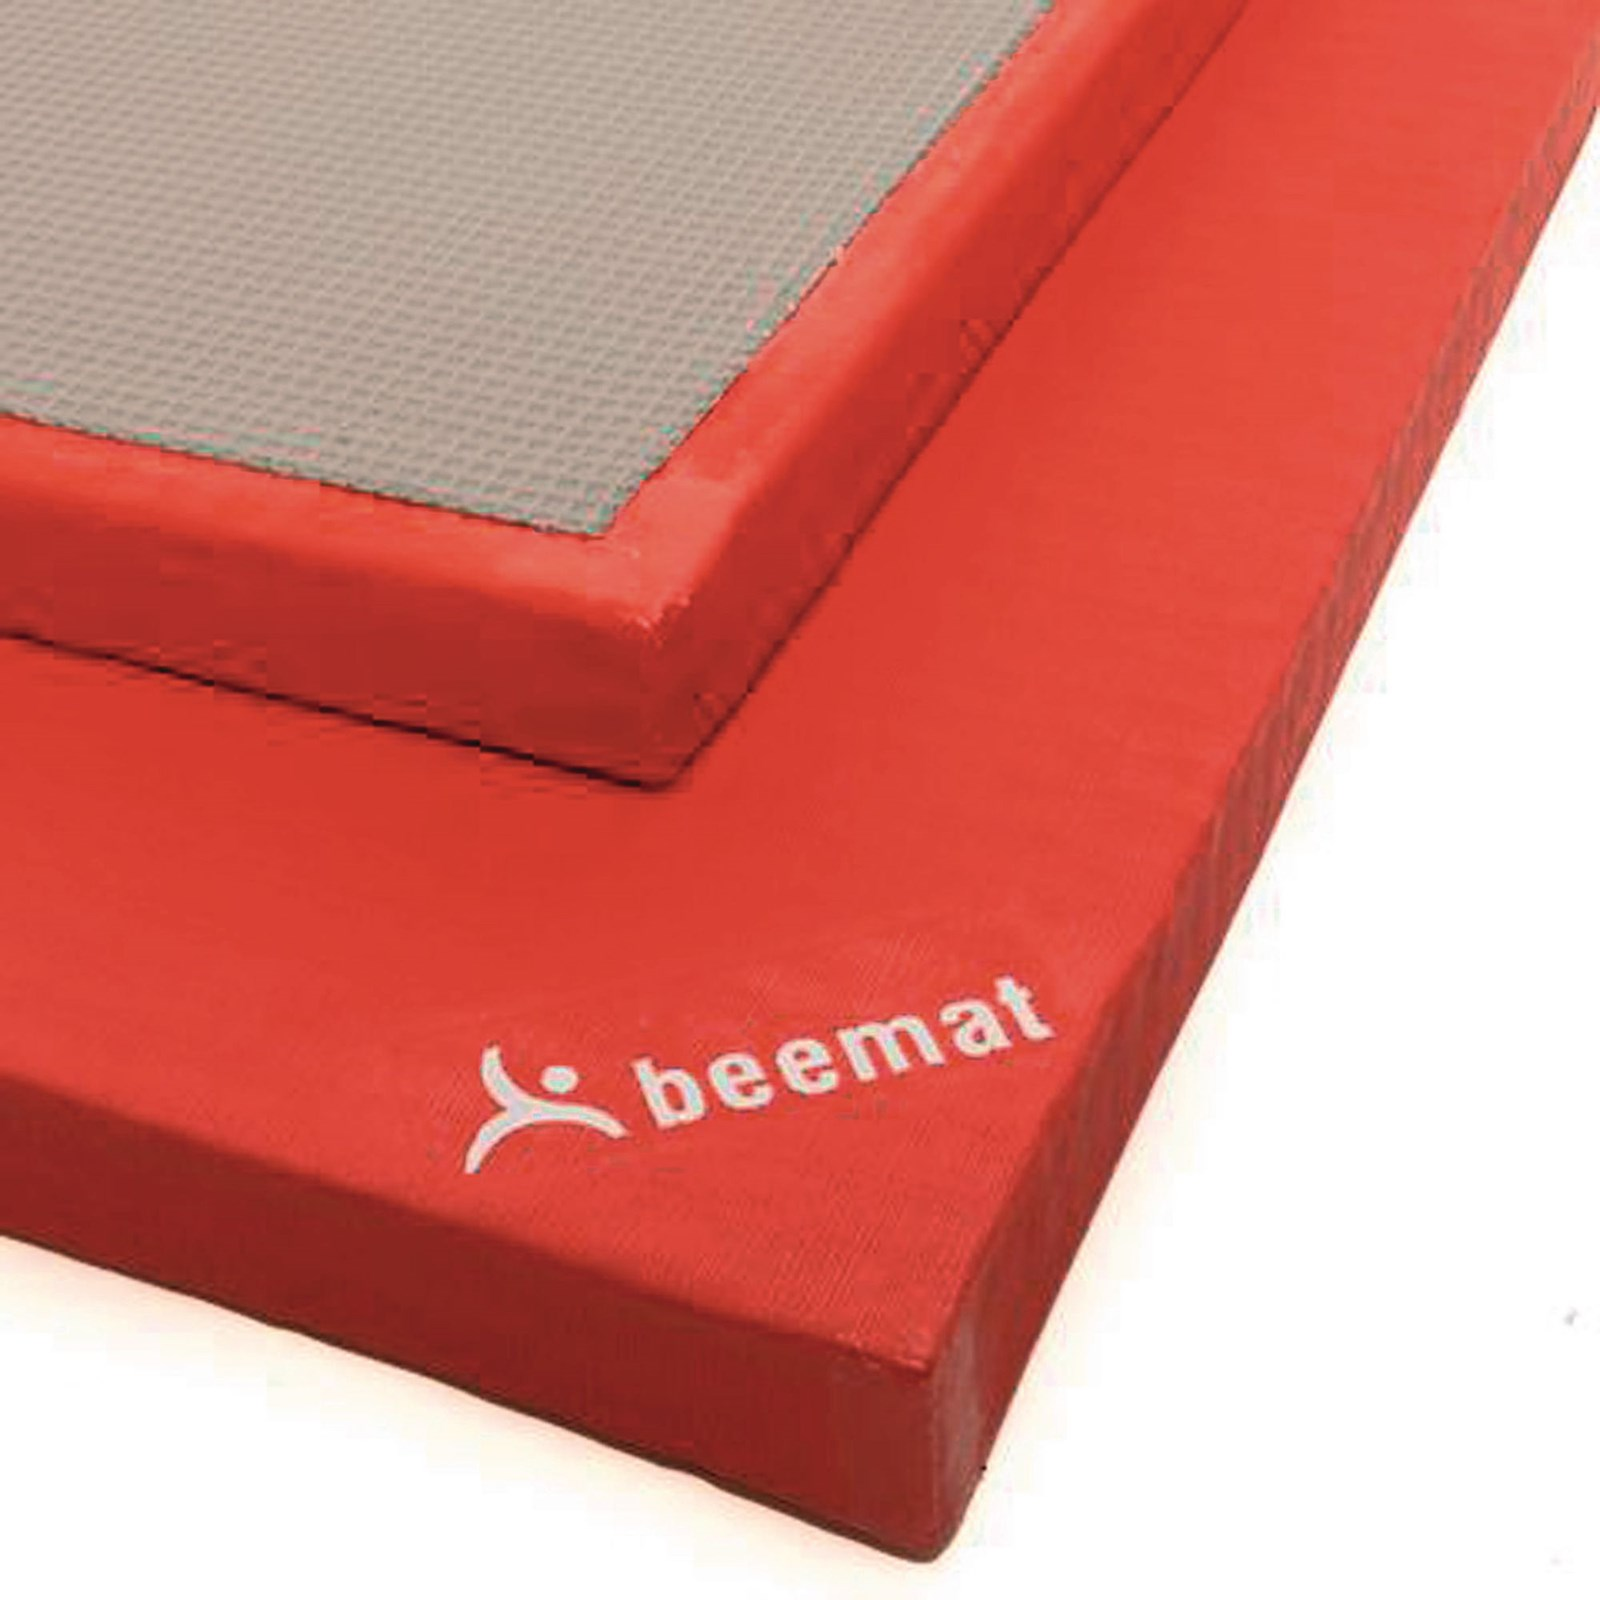 Beemat Competition Judo Mat - 2m x 1m x 40mm Red